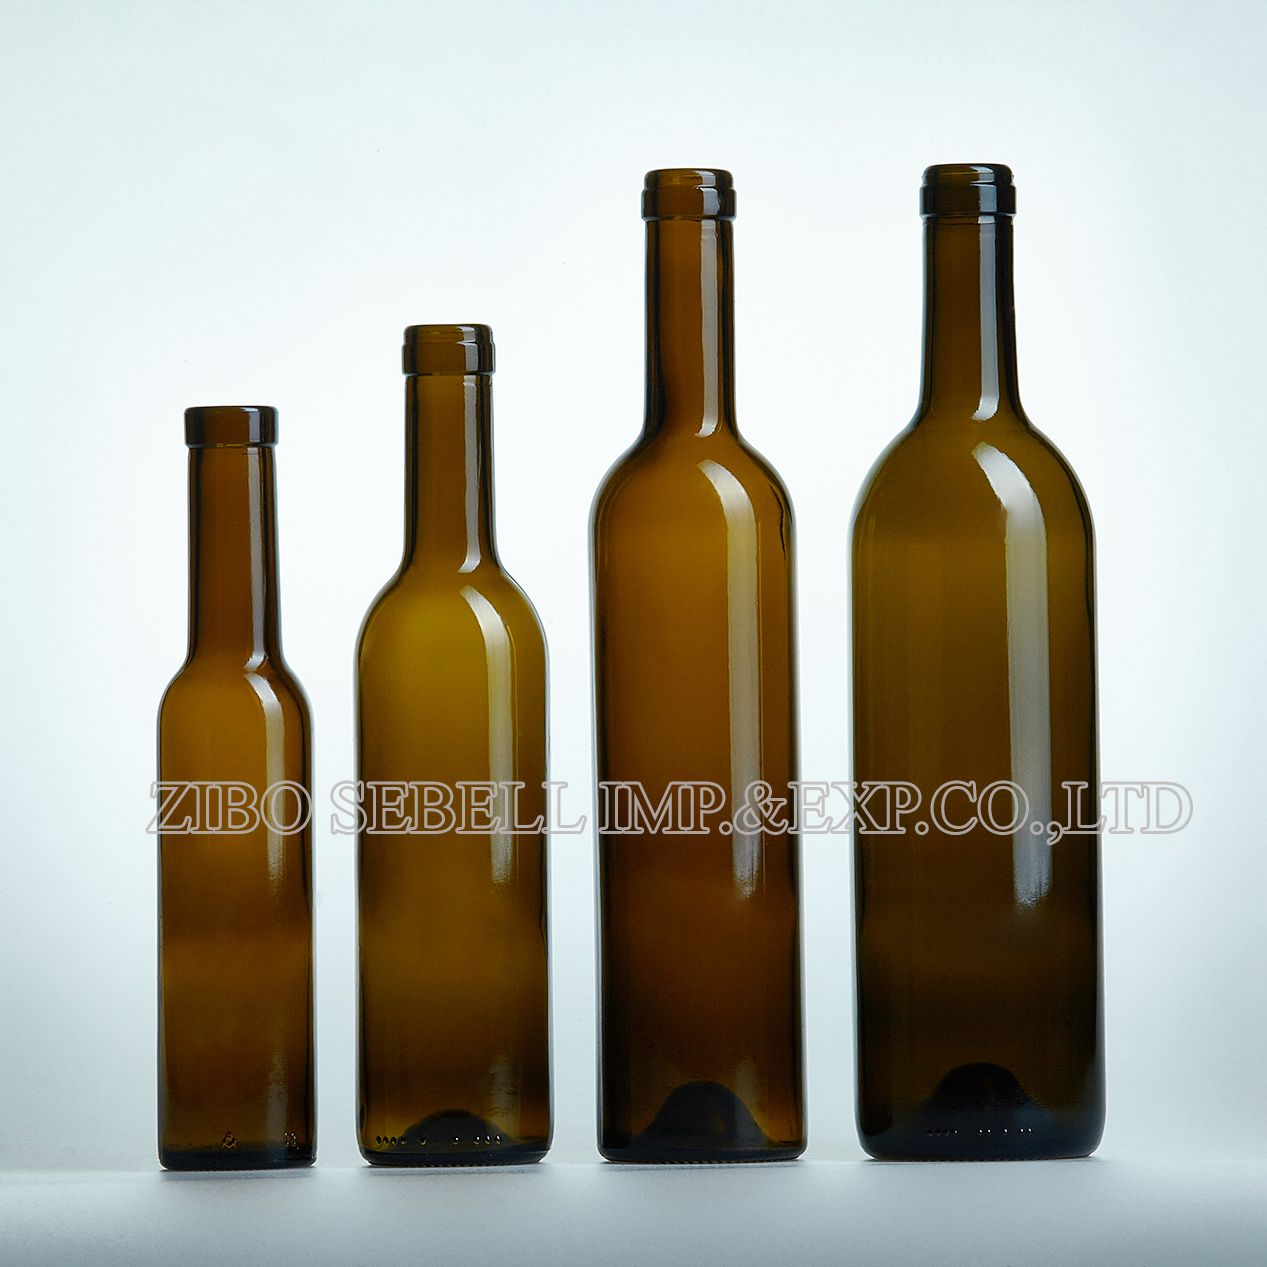 200/375/750ml dark green color wine bottle in cork top